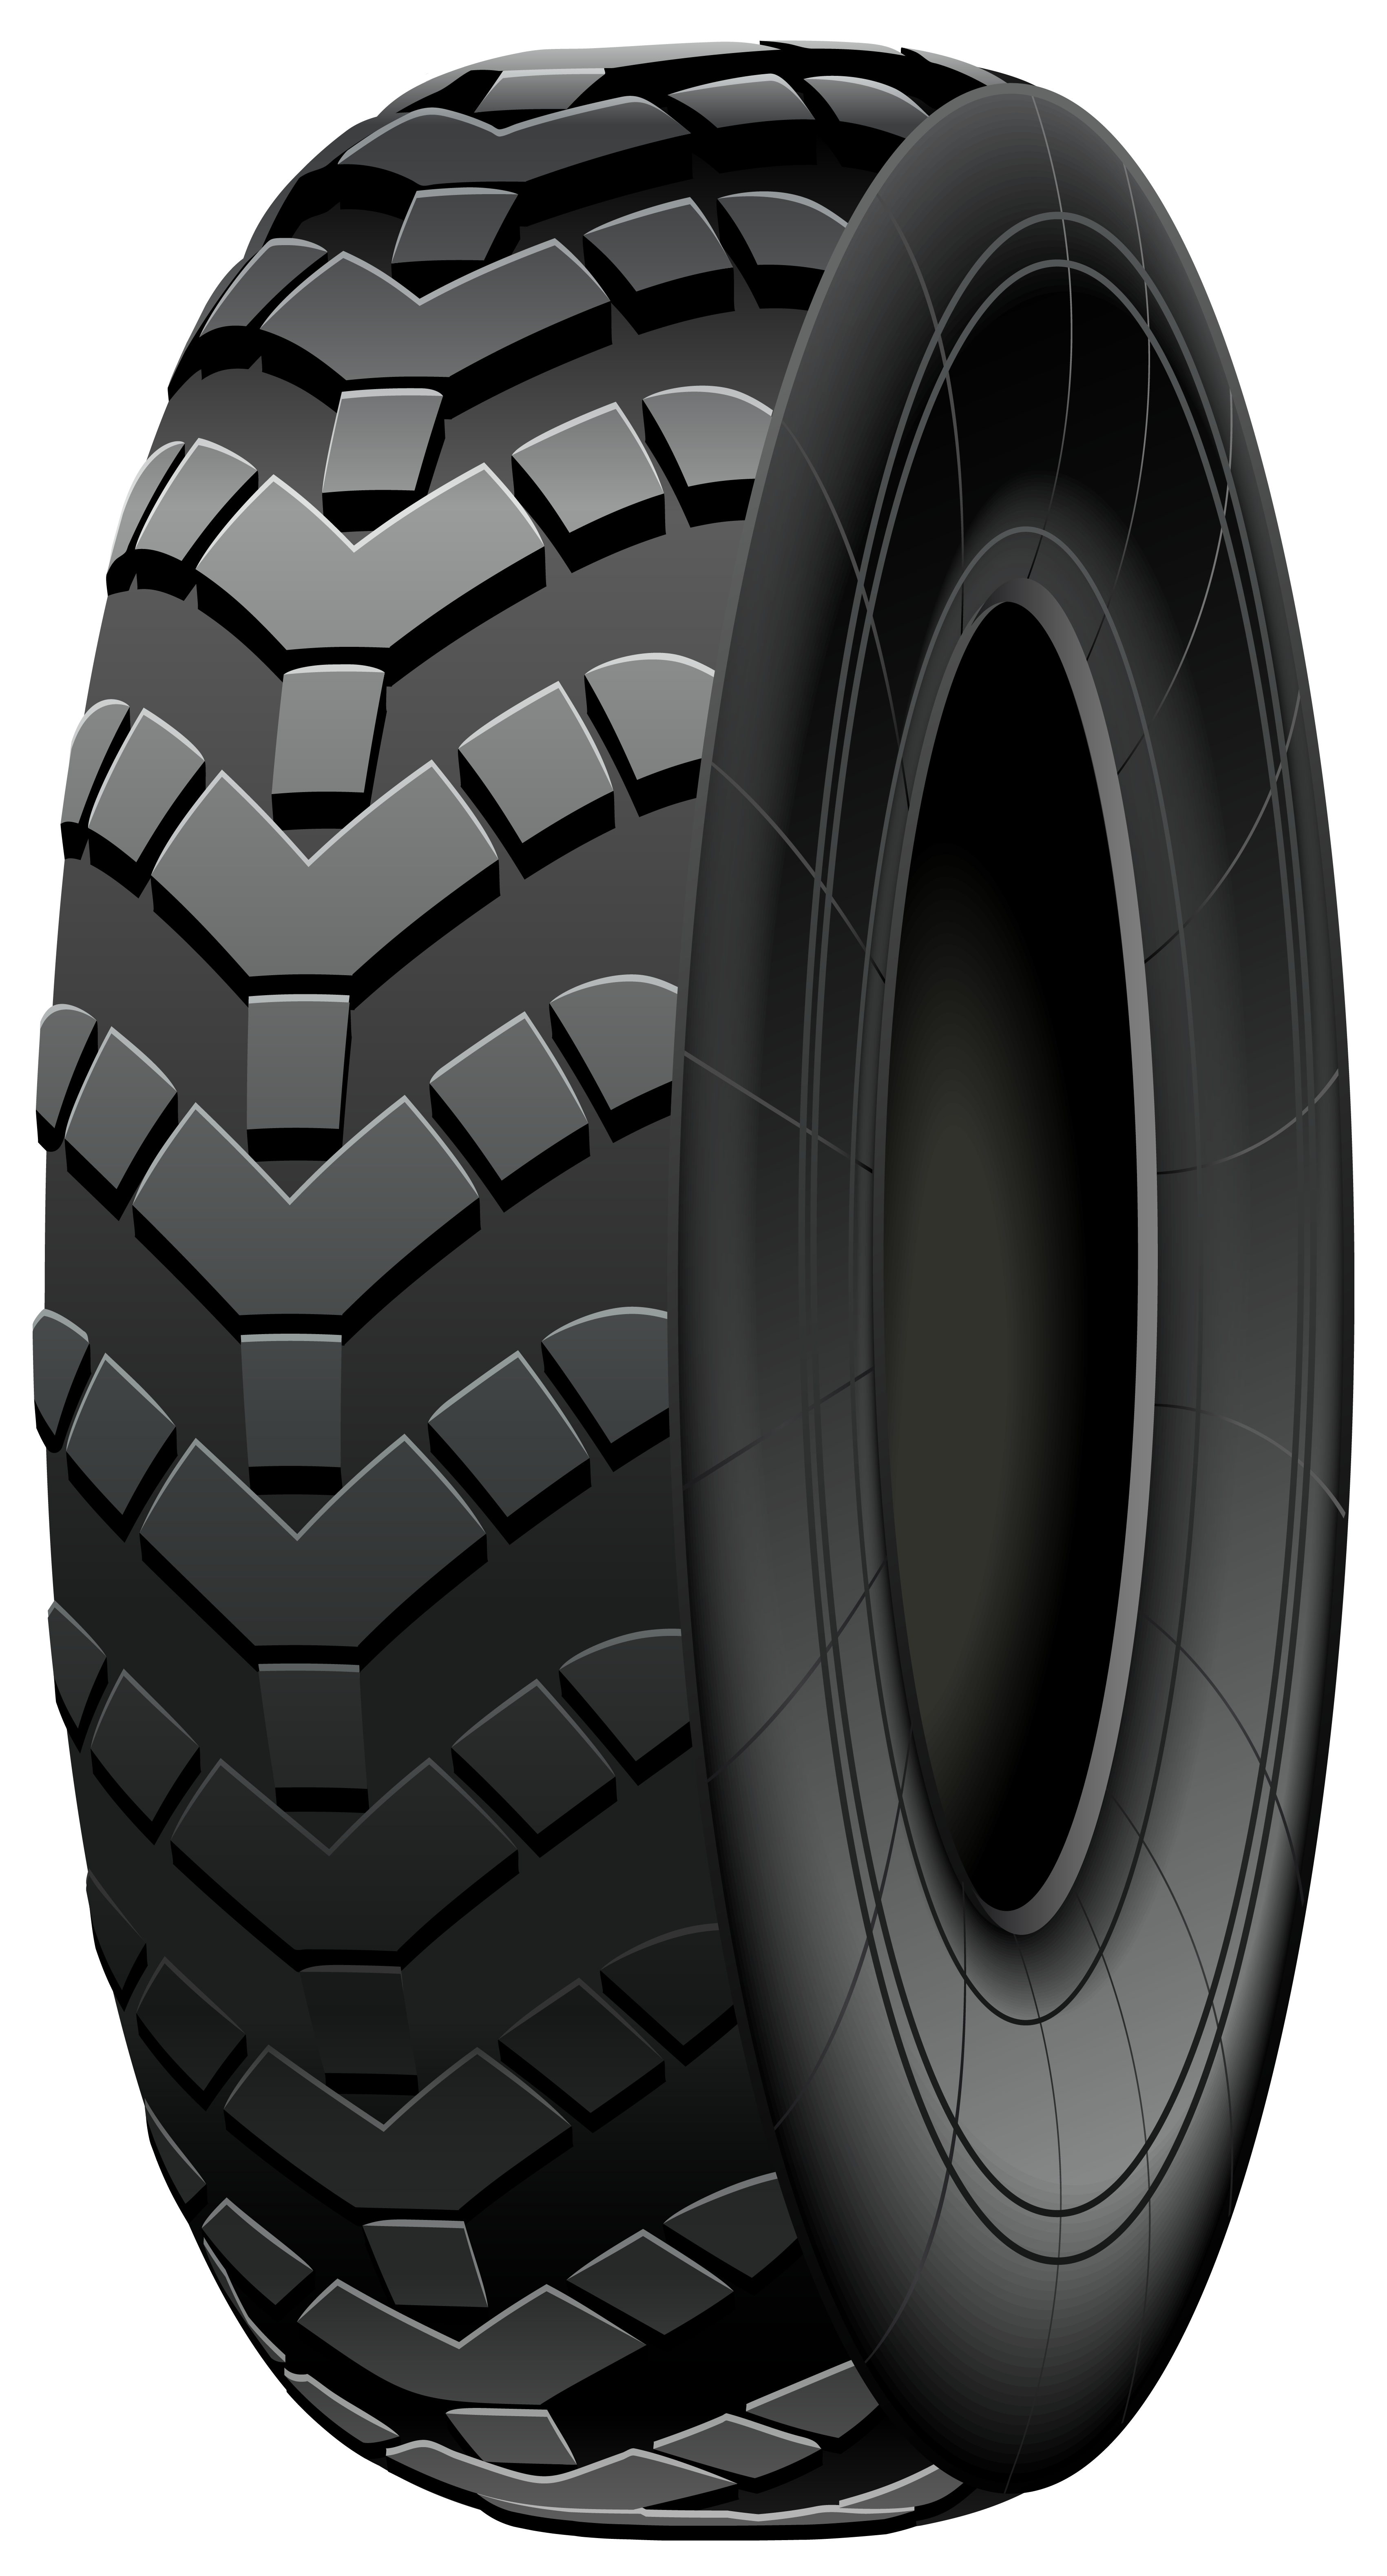 Tire clipart #3, Download drawings